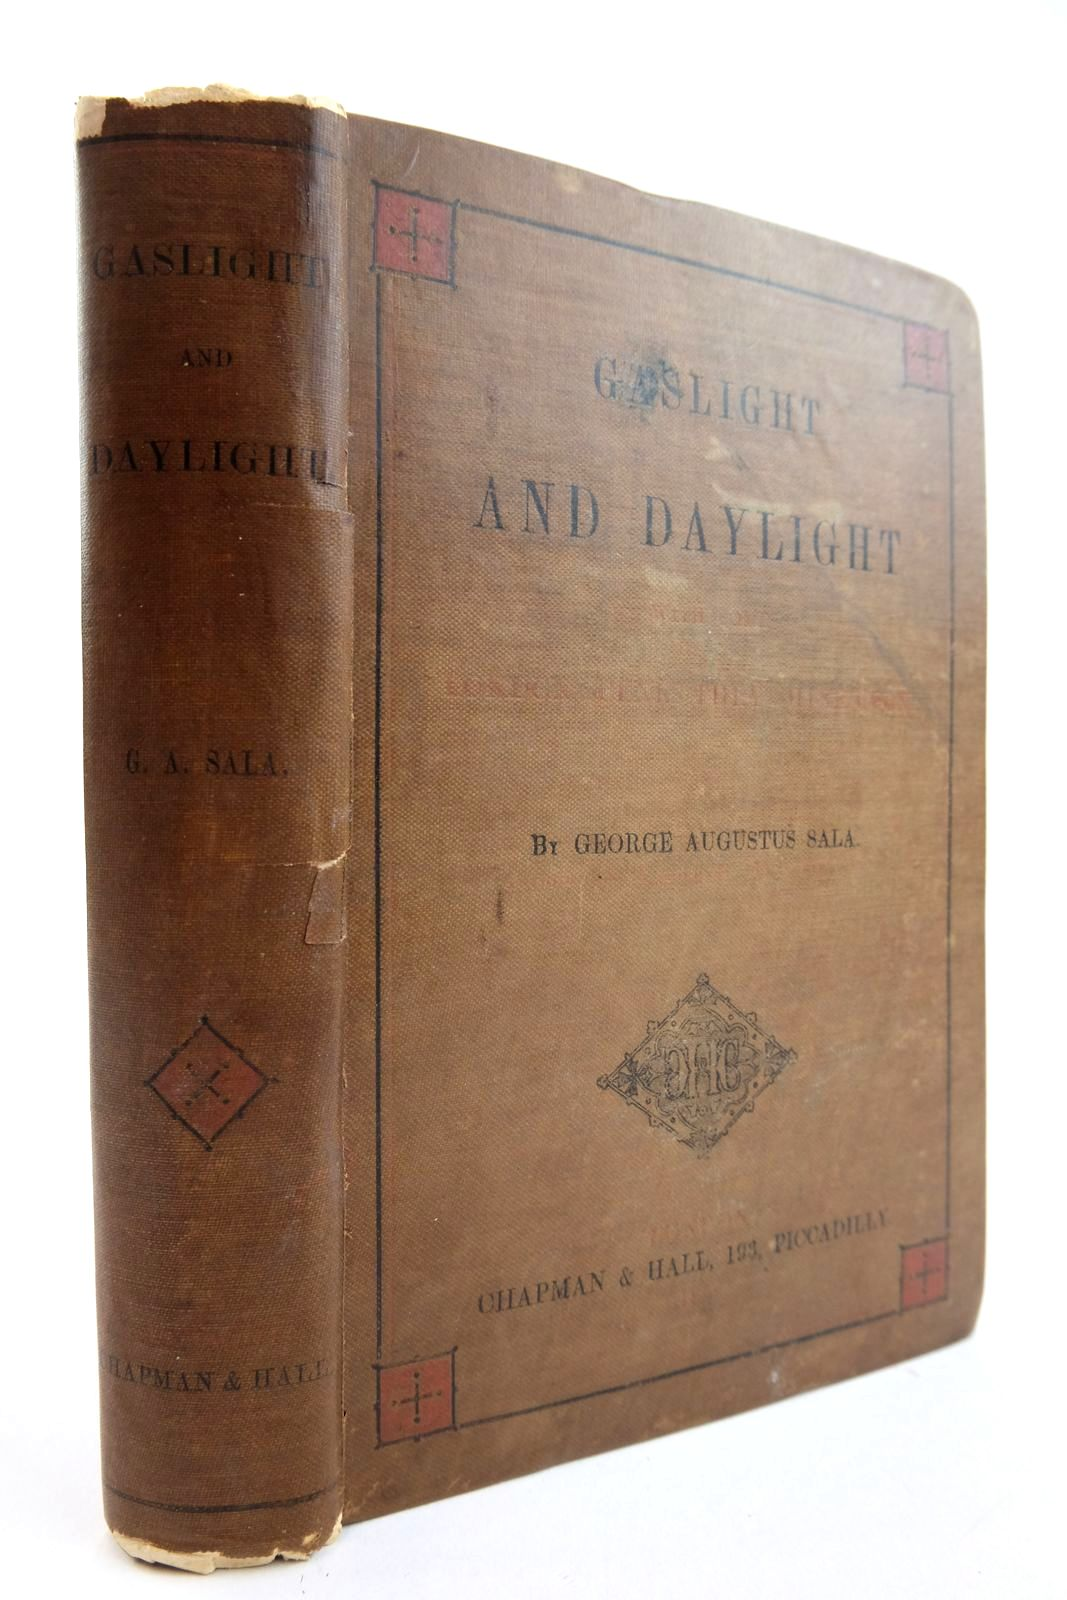 Photo of GASLIGHT AND DAYLIGHT, WITH SOME LONDON SCENES THEY SHINE UPON written by Sala, George Augustus published by Chapman & Hall (STOCK CODE: 2134130)  for sale by Stella & Rose's Books